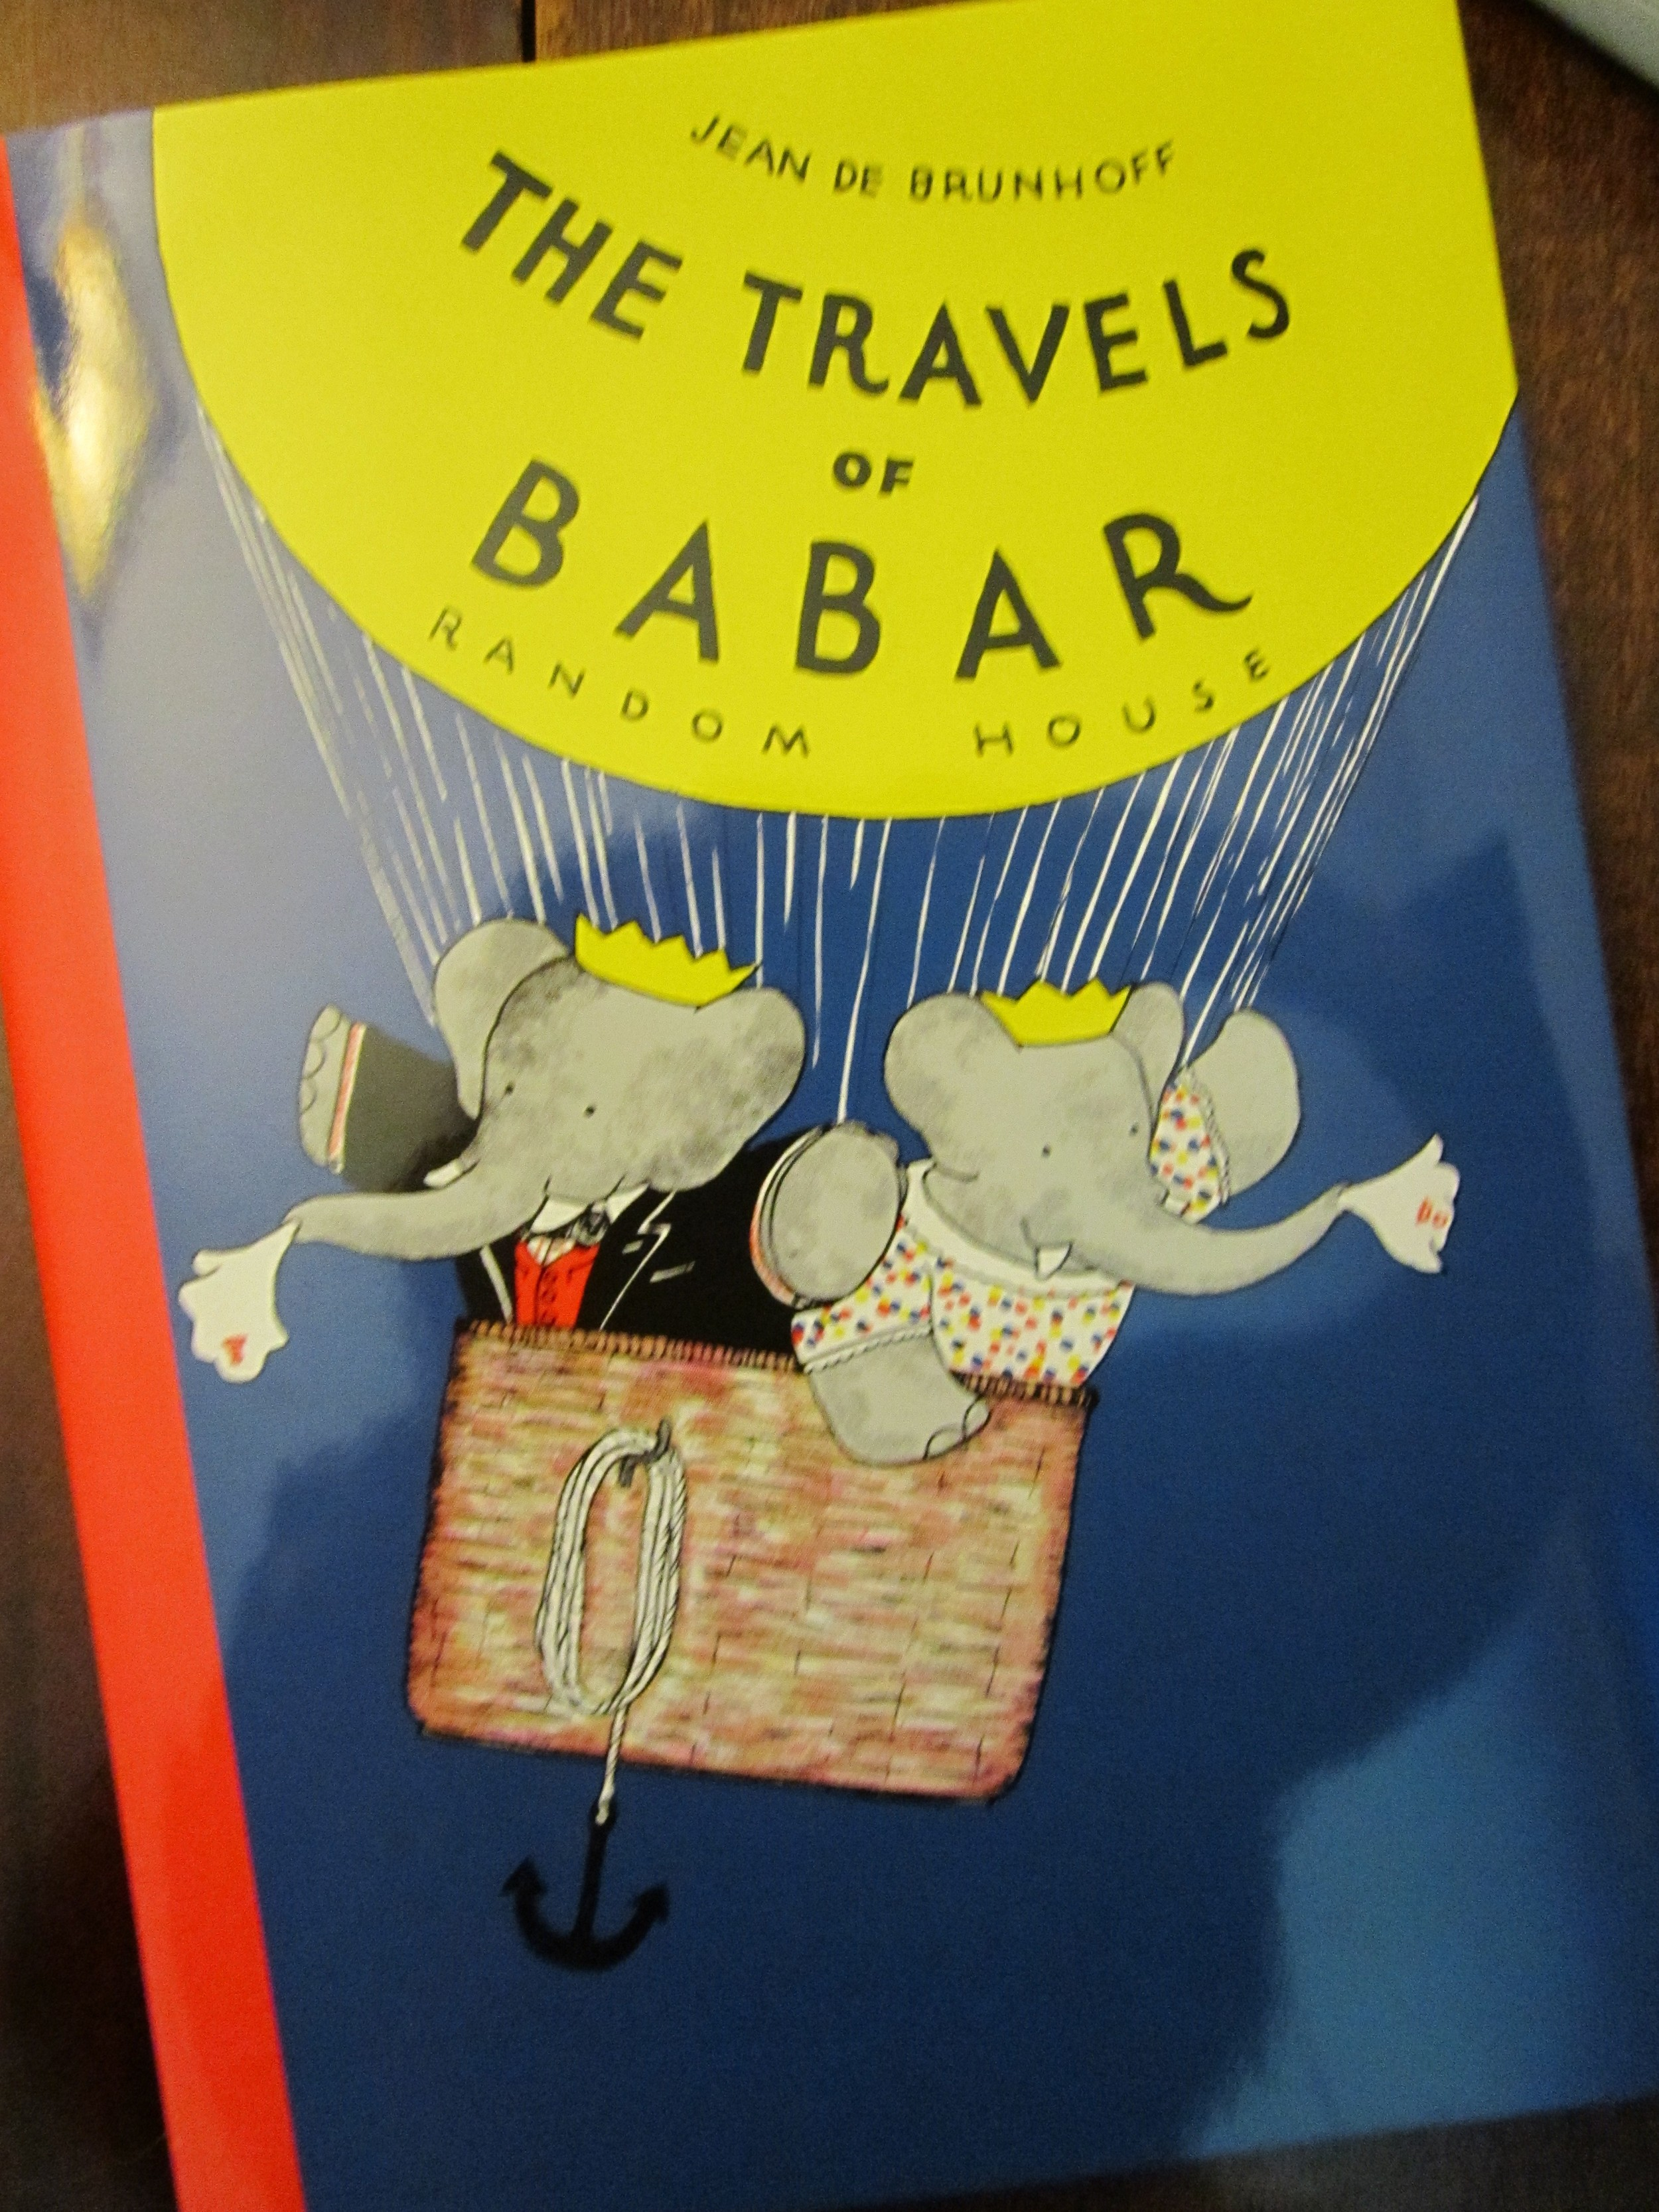 Babar is one of my all time favorite children's books!